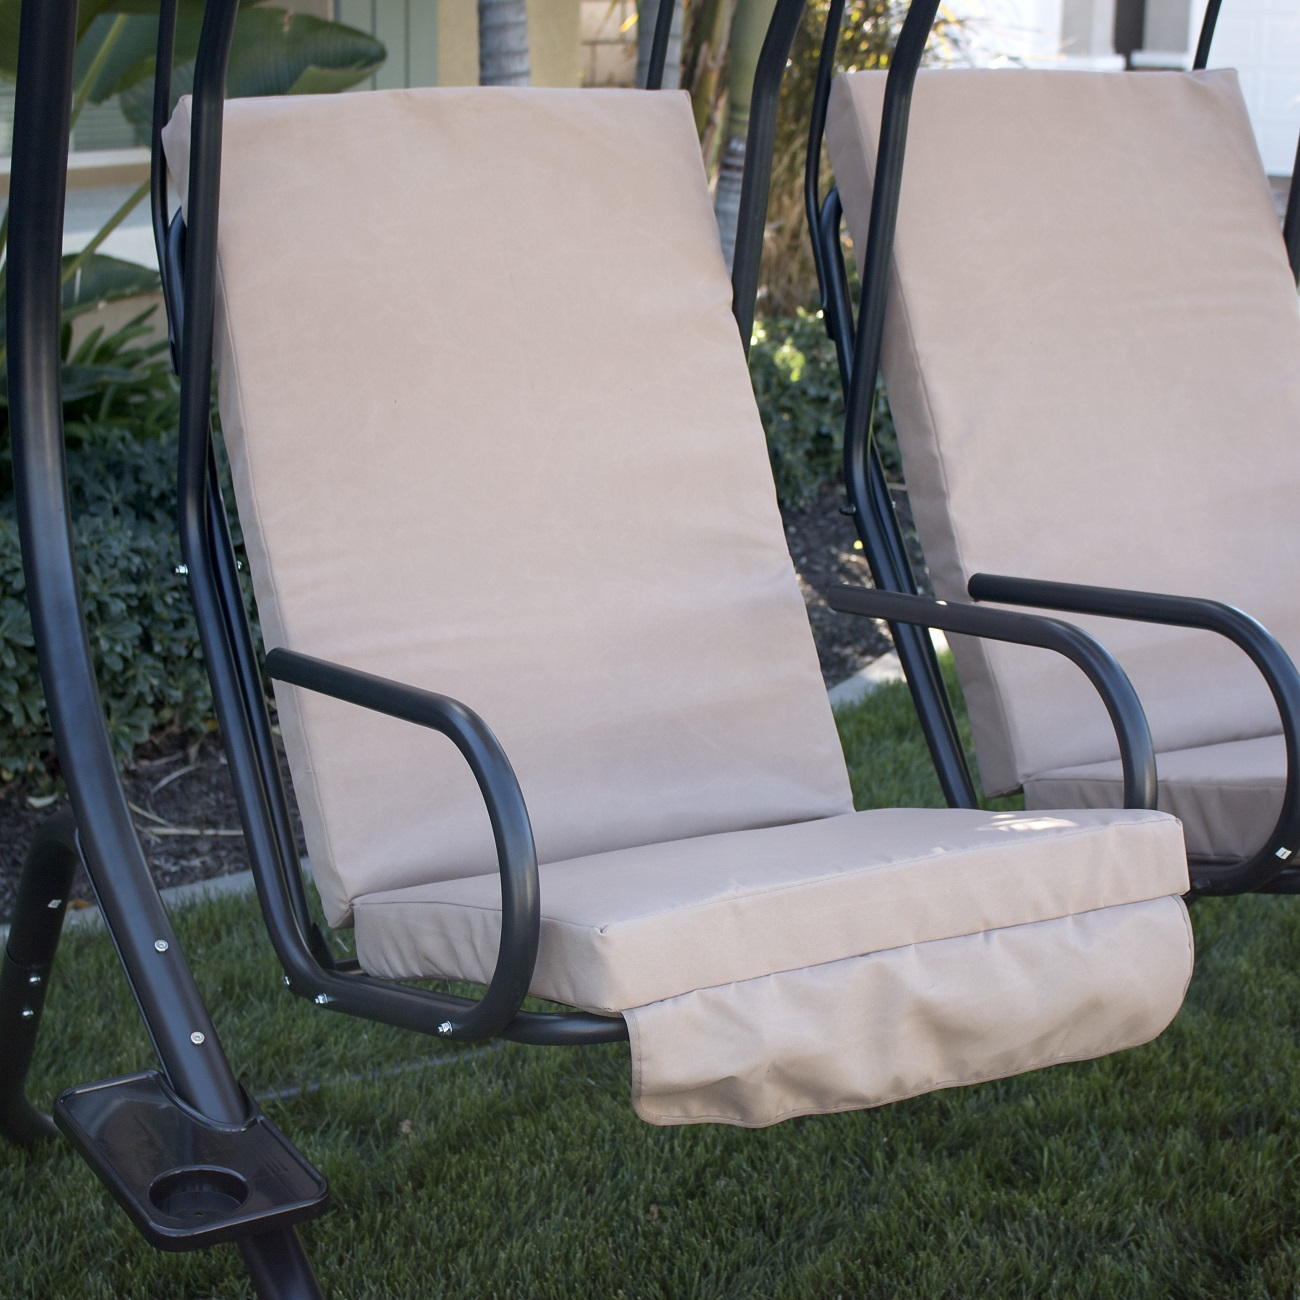 New Hanging Chaise Lounger Chair Arc Stand Air Porch Swing